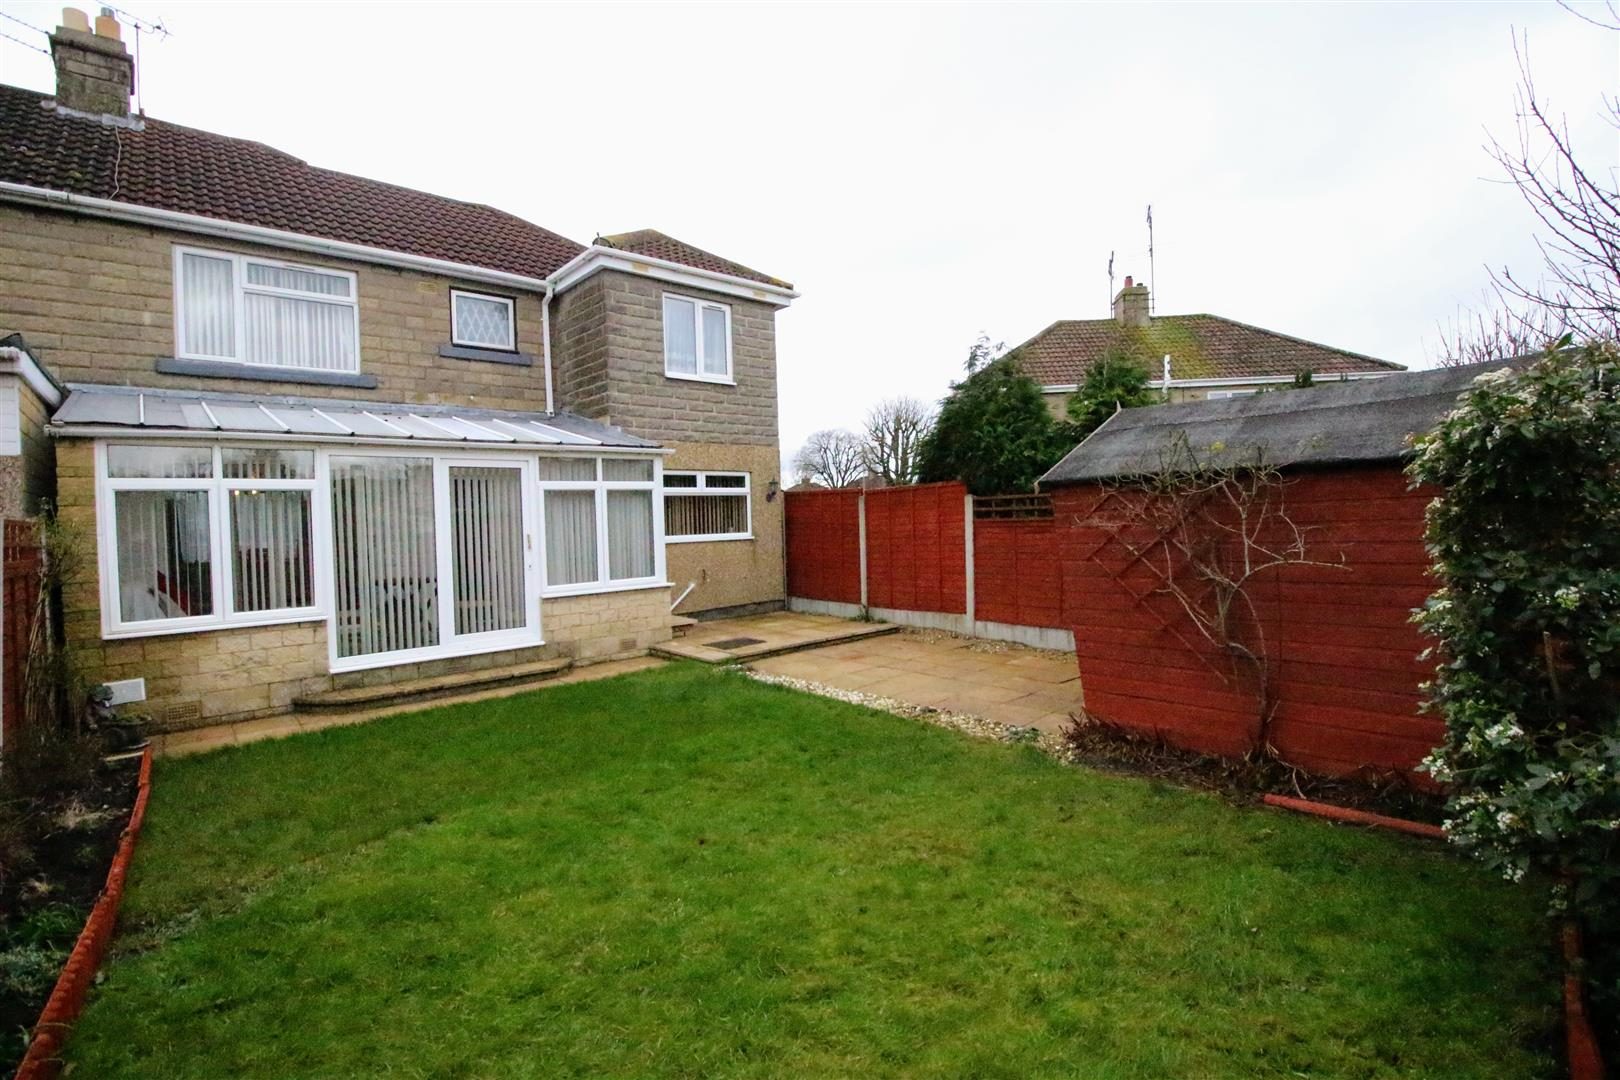 4 Bedrooms Semi Detached House for sale in Collett Avenue, Off Northern Road, Swindon